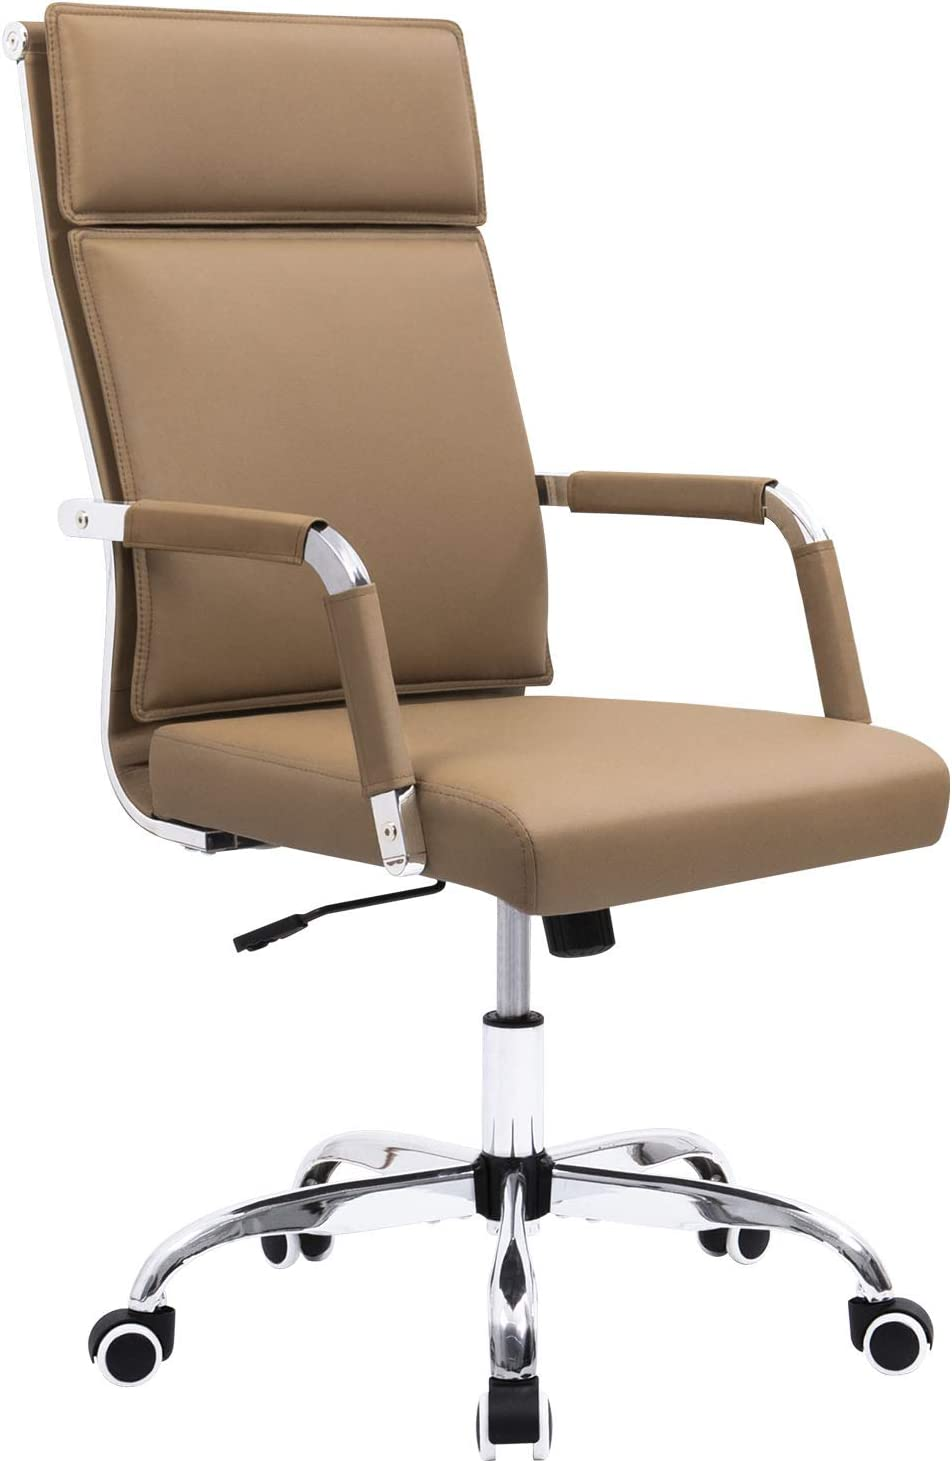 Homall Office Desk Chair Mid-Back Computer Chair Leather Executive Adjustable Swivel Task Chair Conference Chair with Armrests Brown